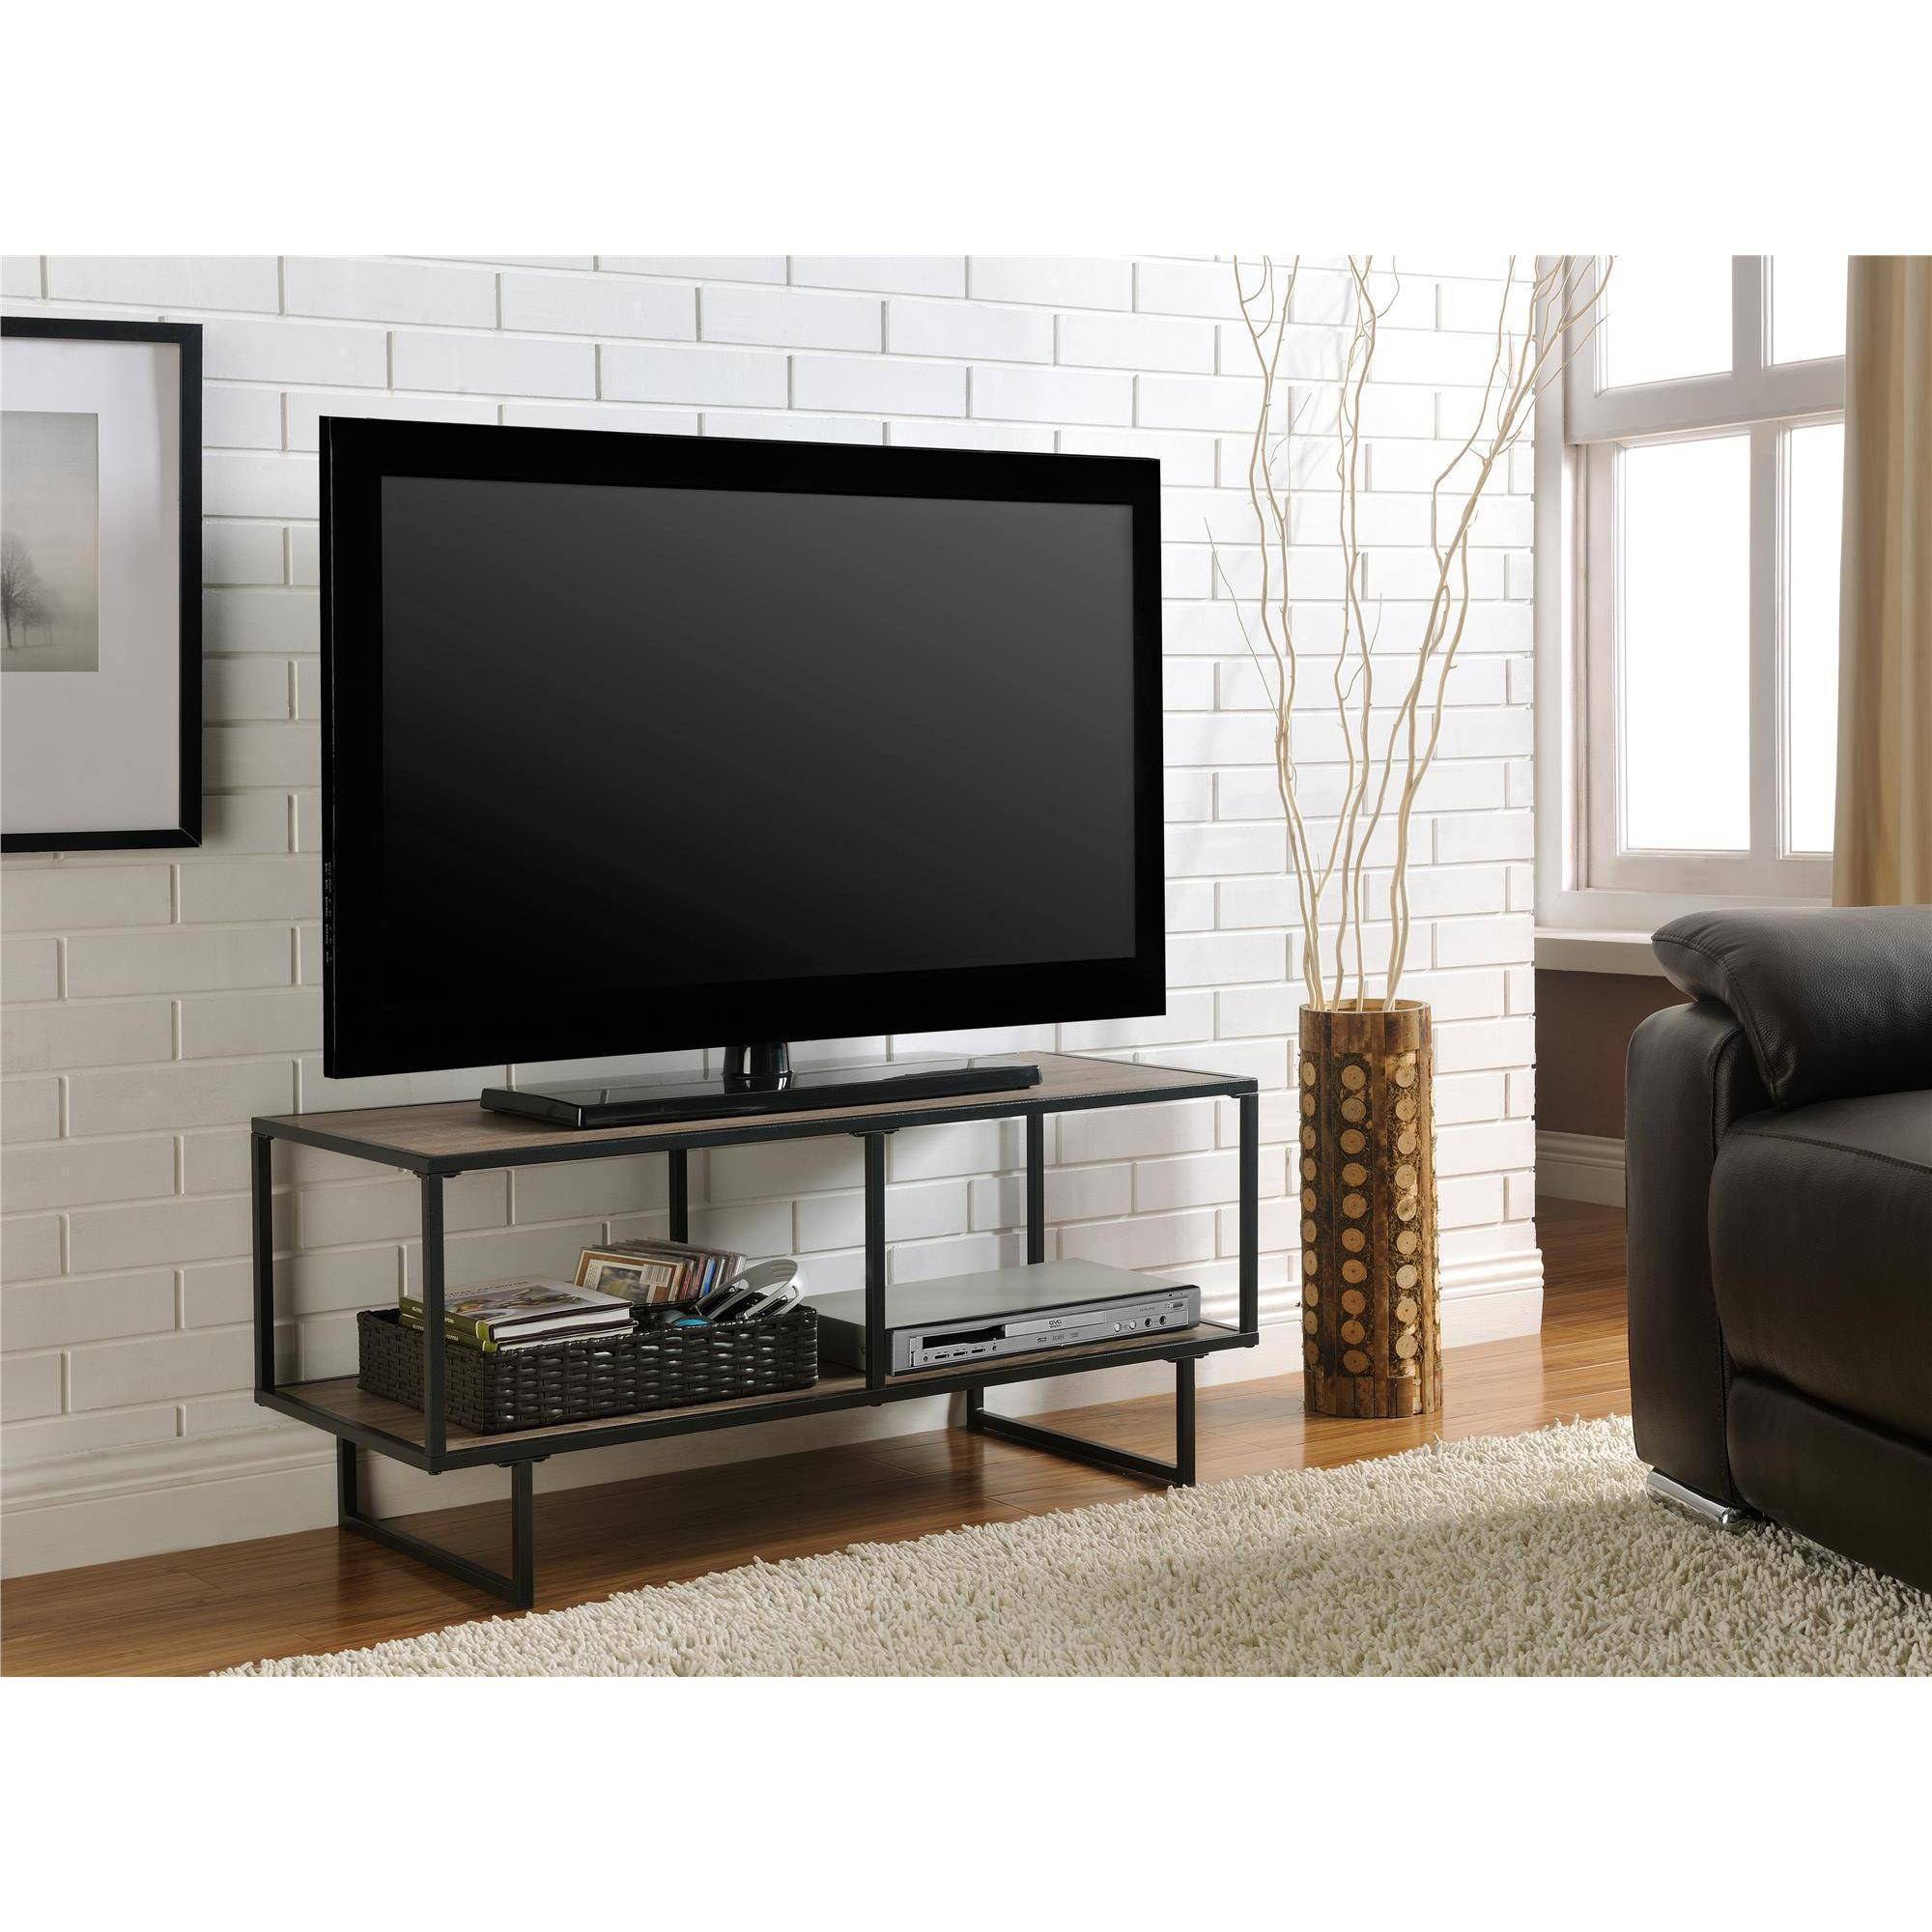 "Emmett Sonoma TV Stand/Coffee Table with Metal Frame for TVs up to 42"", Oak/Gunmetal Gray"